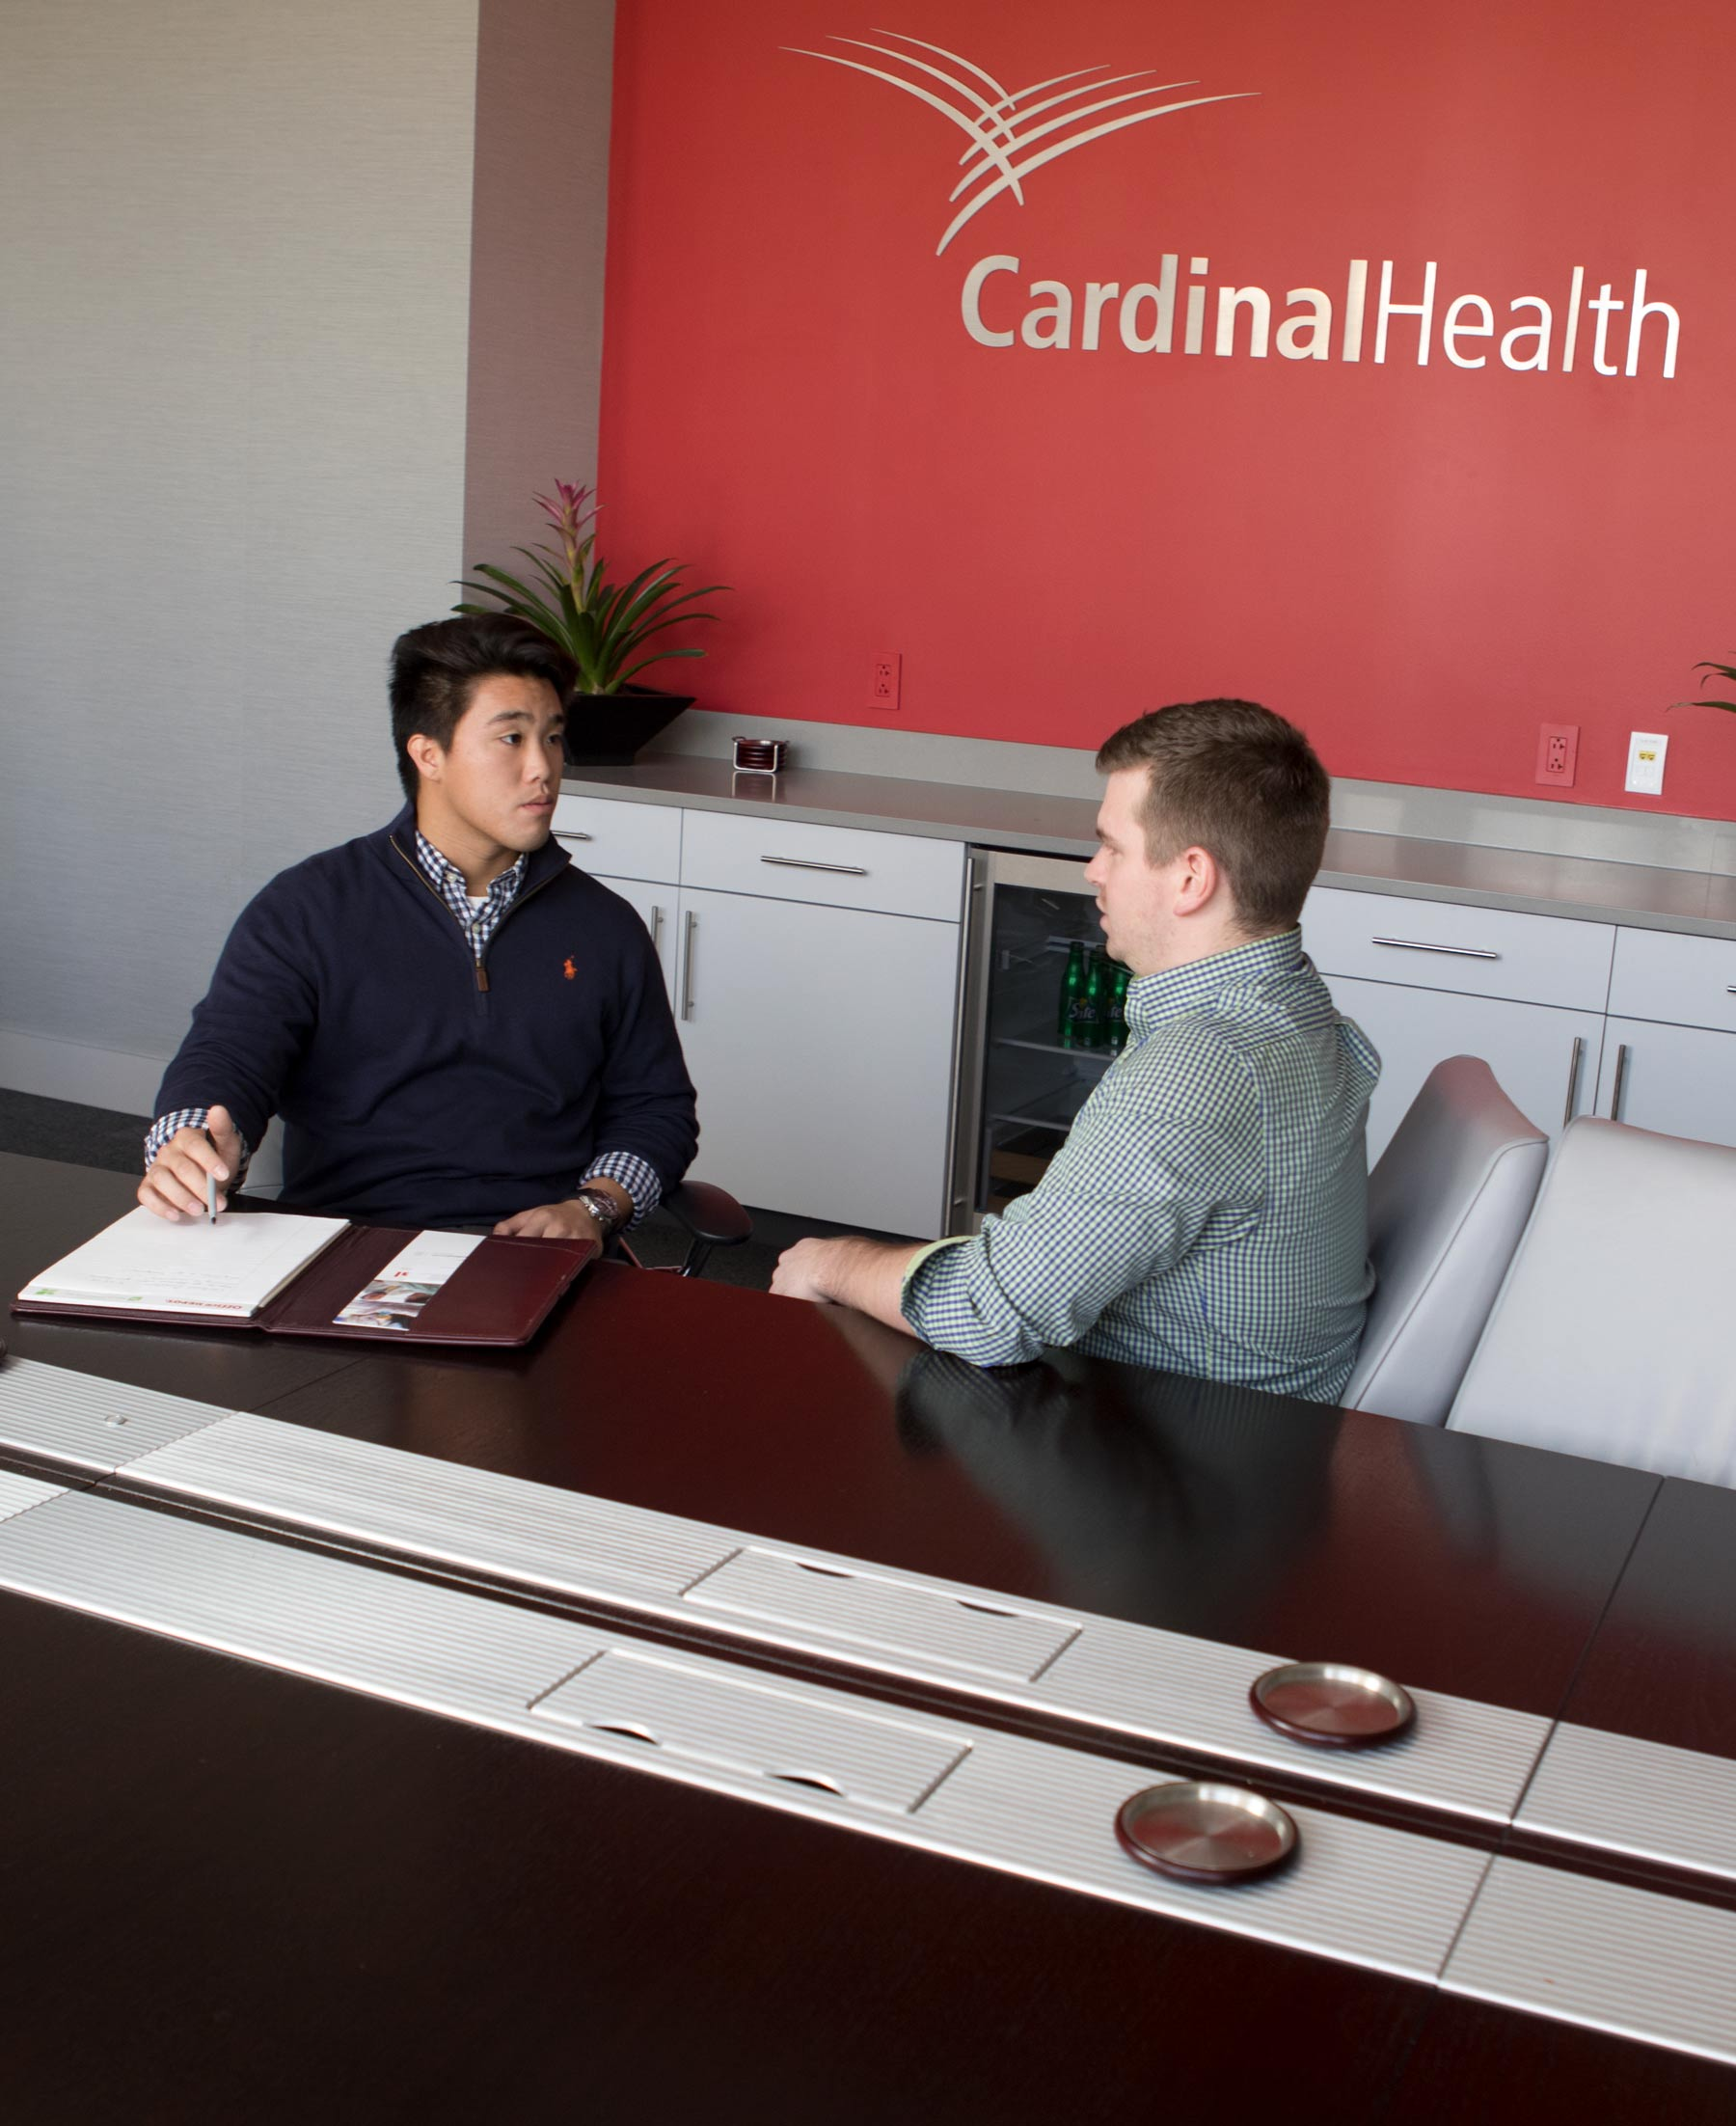 Meeting at Cardinal Health